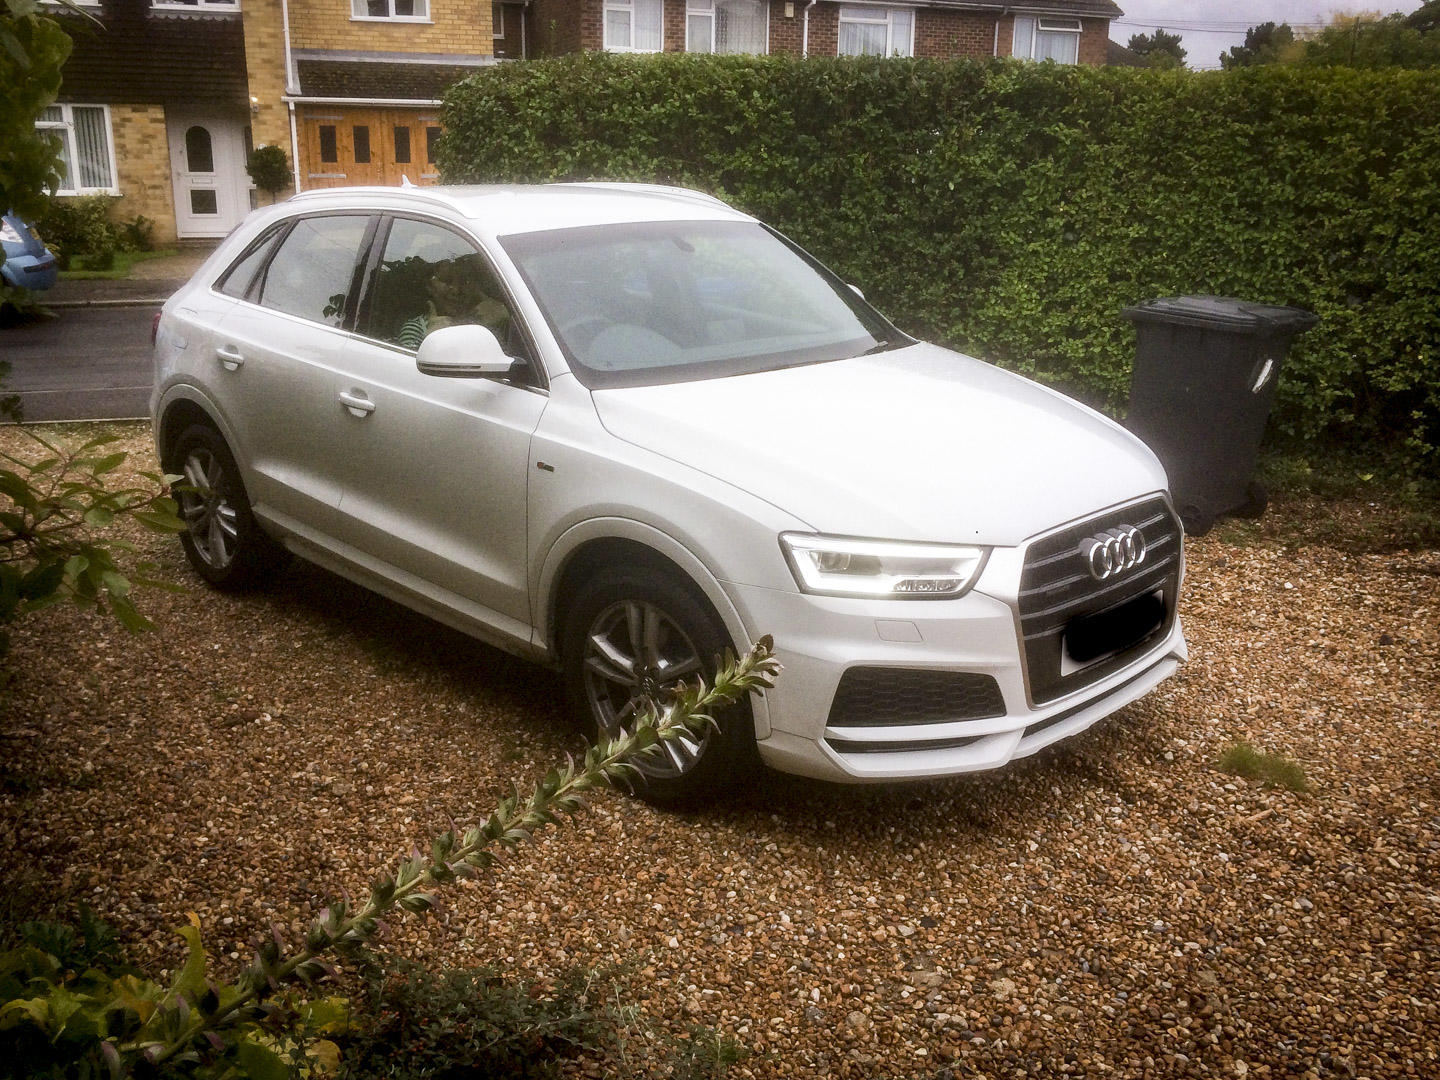 Glacier white Audi Q3 front side on view on driveway.